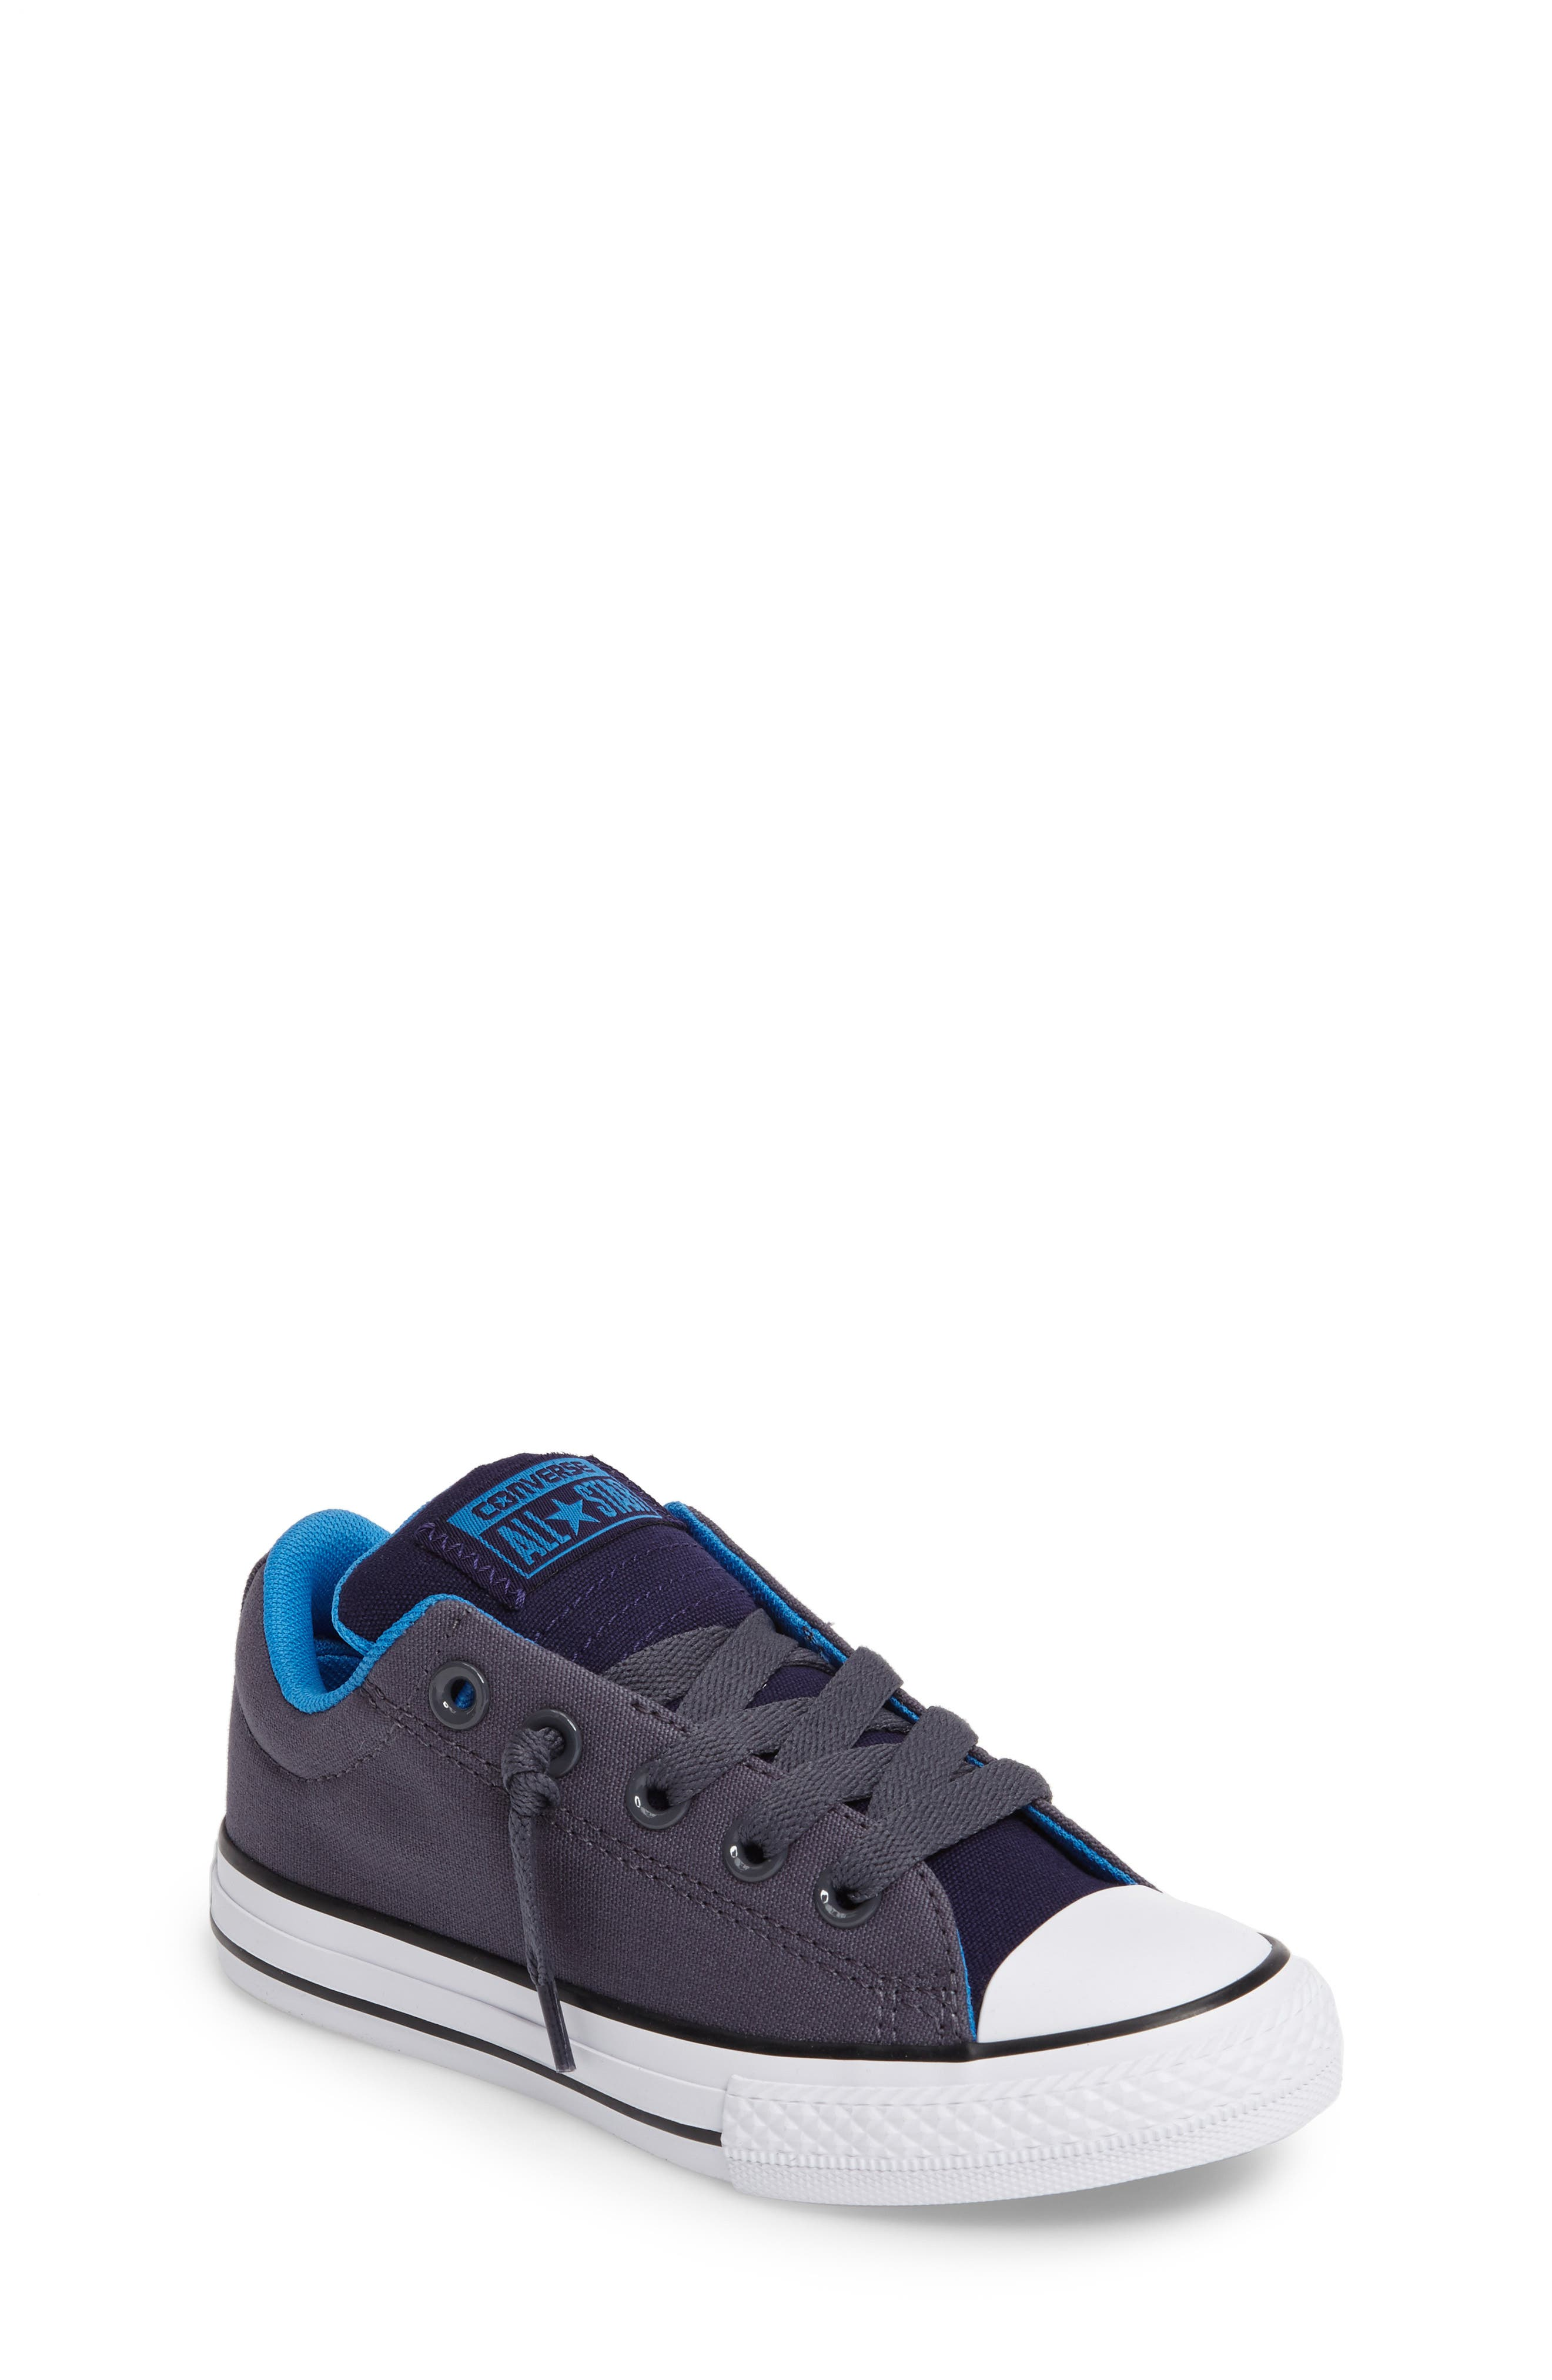 CONVERSE Chuck Taylor<sup>®</sup> All Star<sup>®</sup> Ox Sneaker